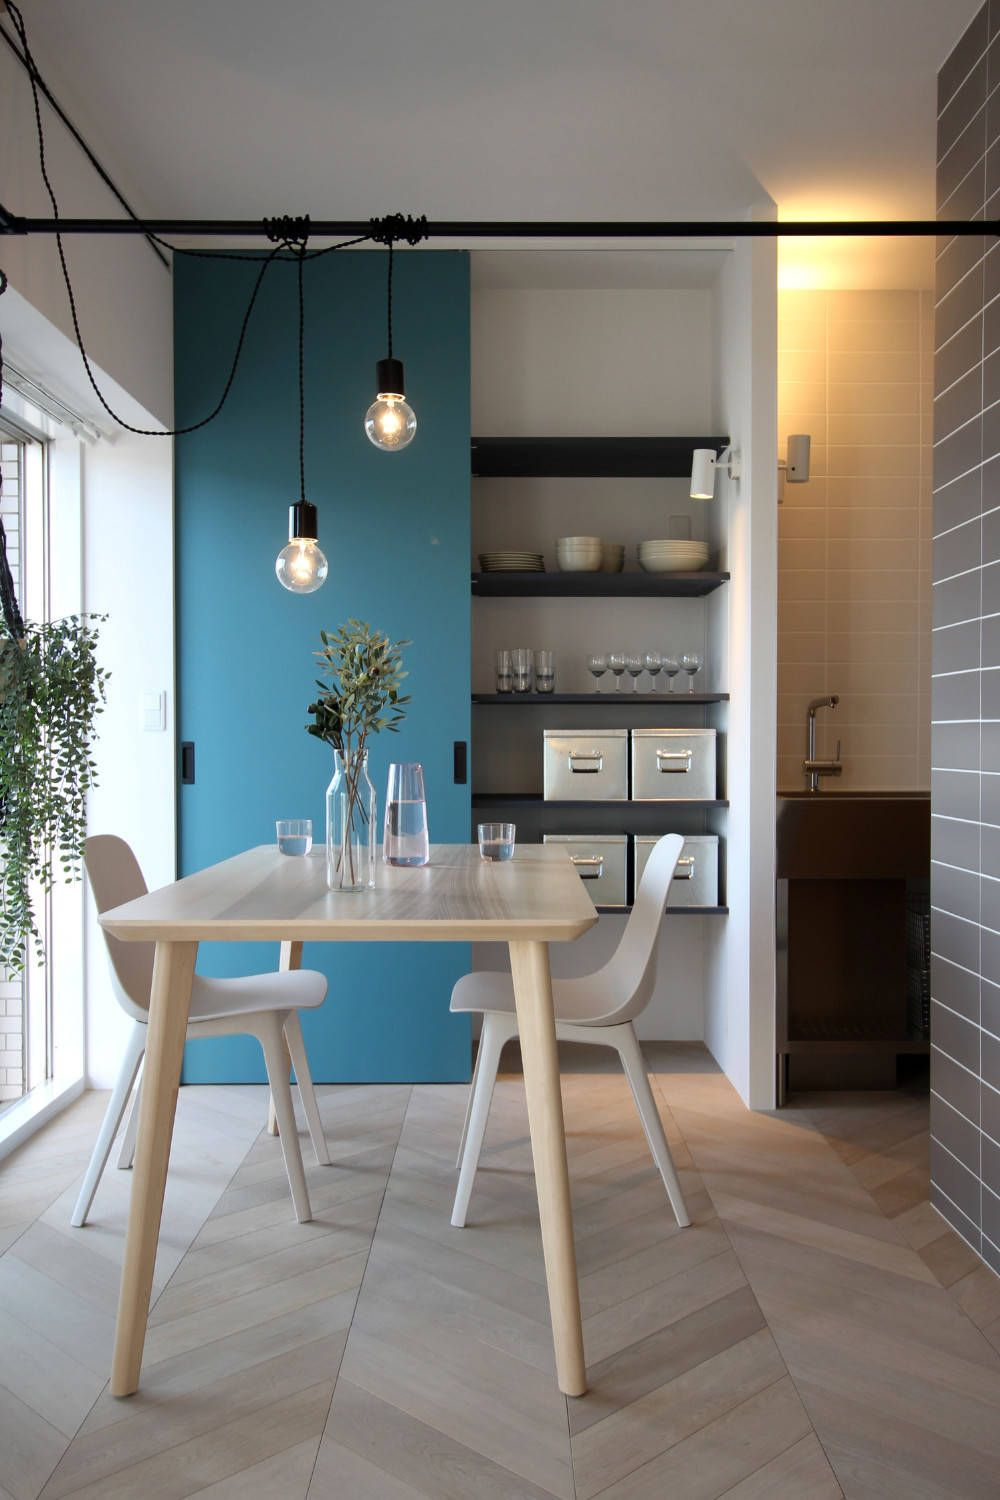 Storage-wall-with-sliding-door-in-the-backdrop-adds-blue-to-the-small-dining-room-54367